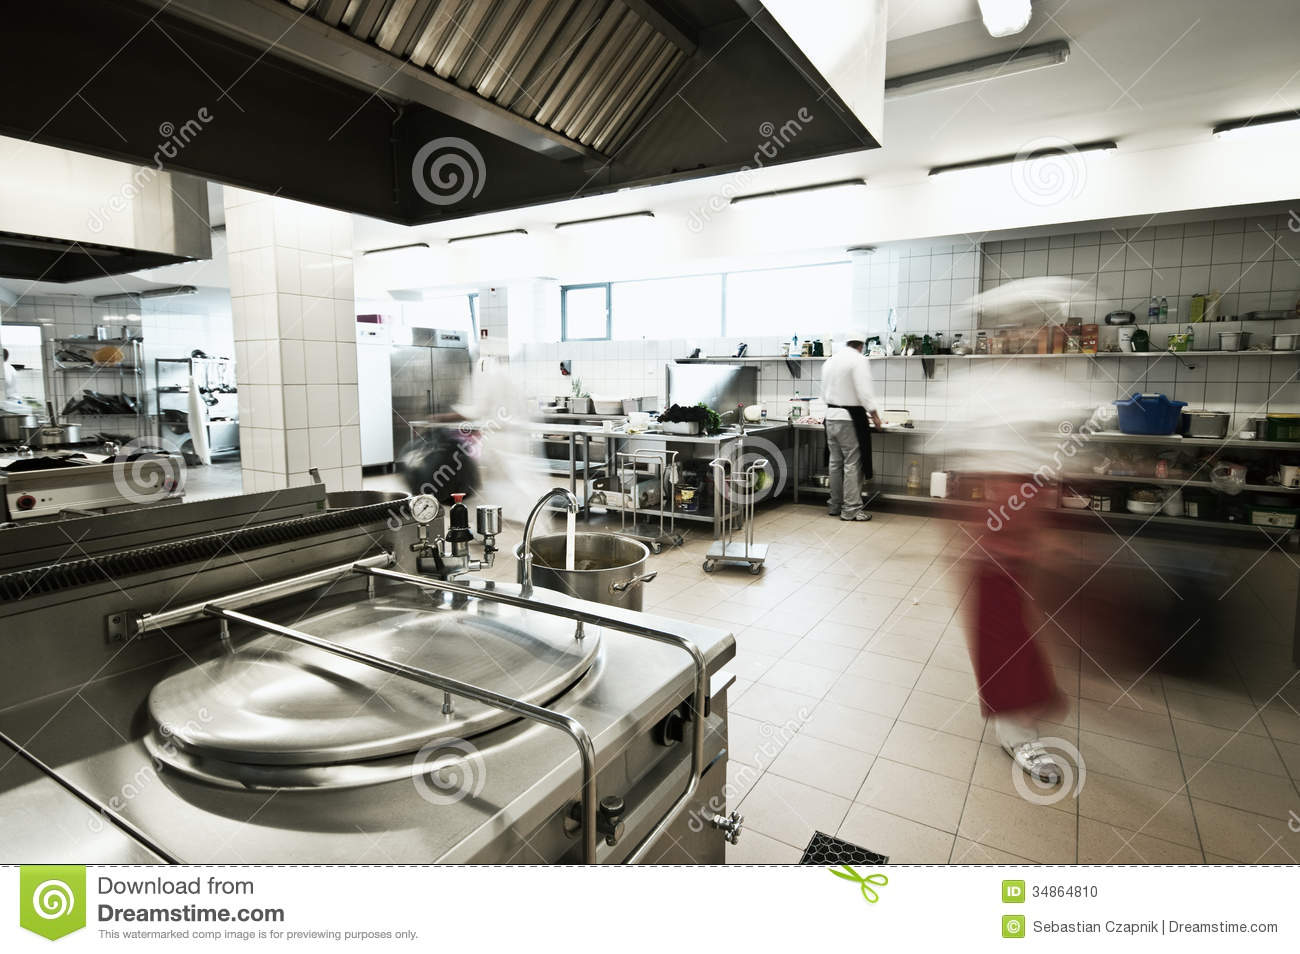 Industrial Kitchen Stock Photo - Image: 34864810